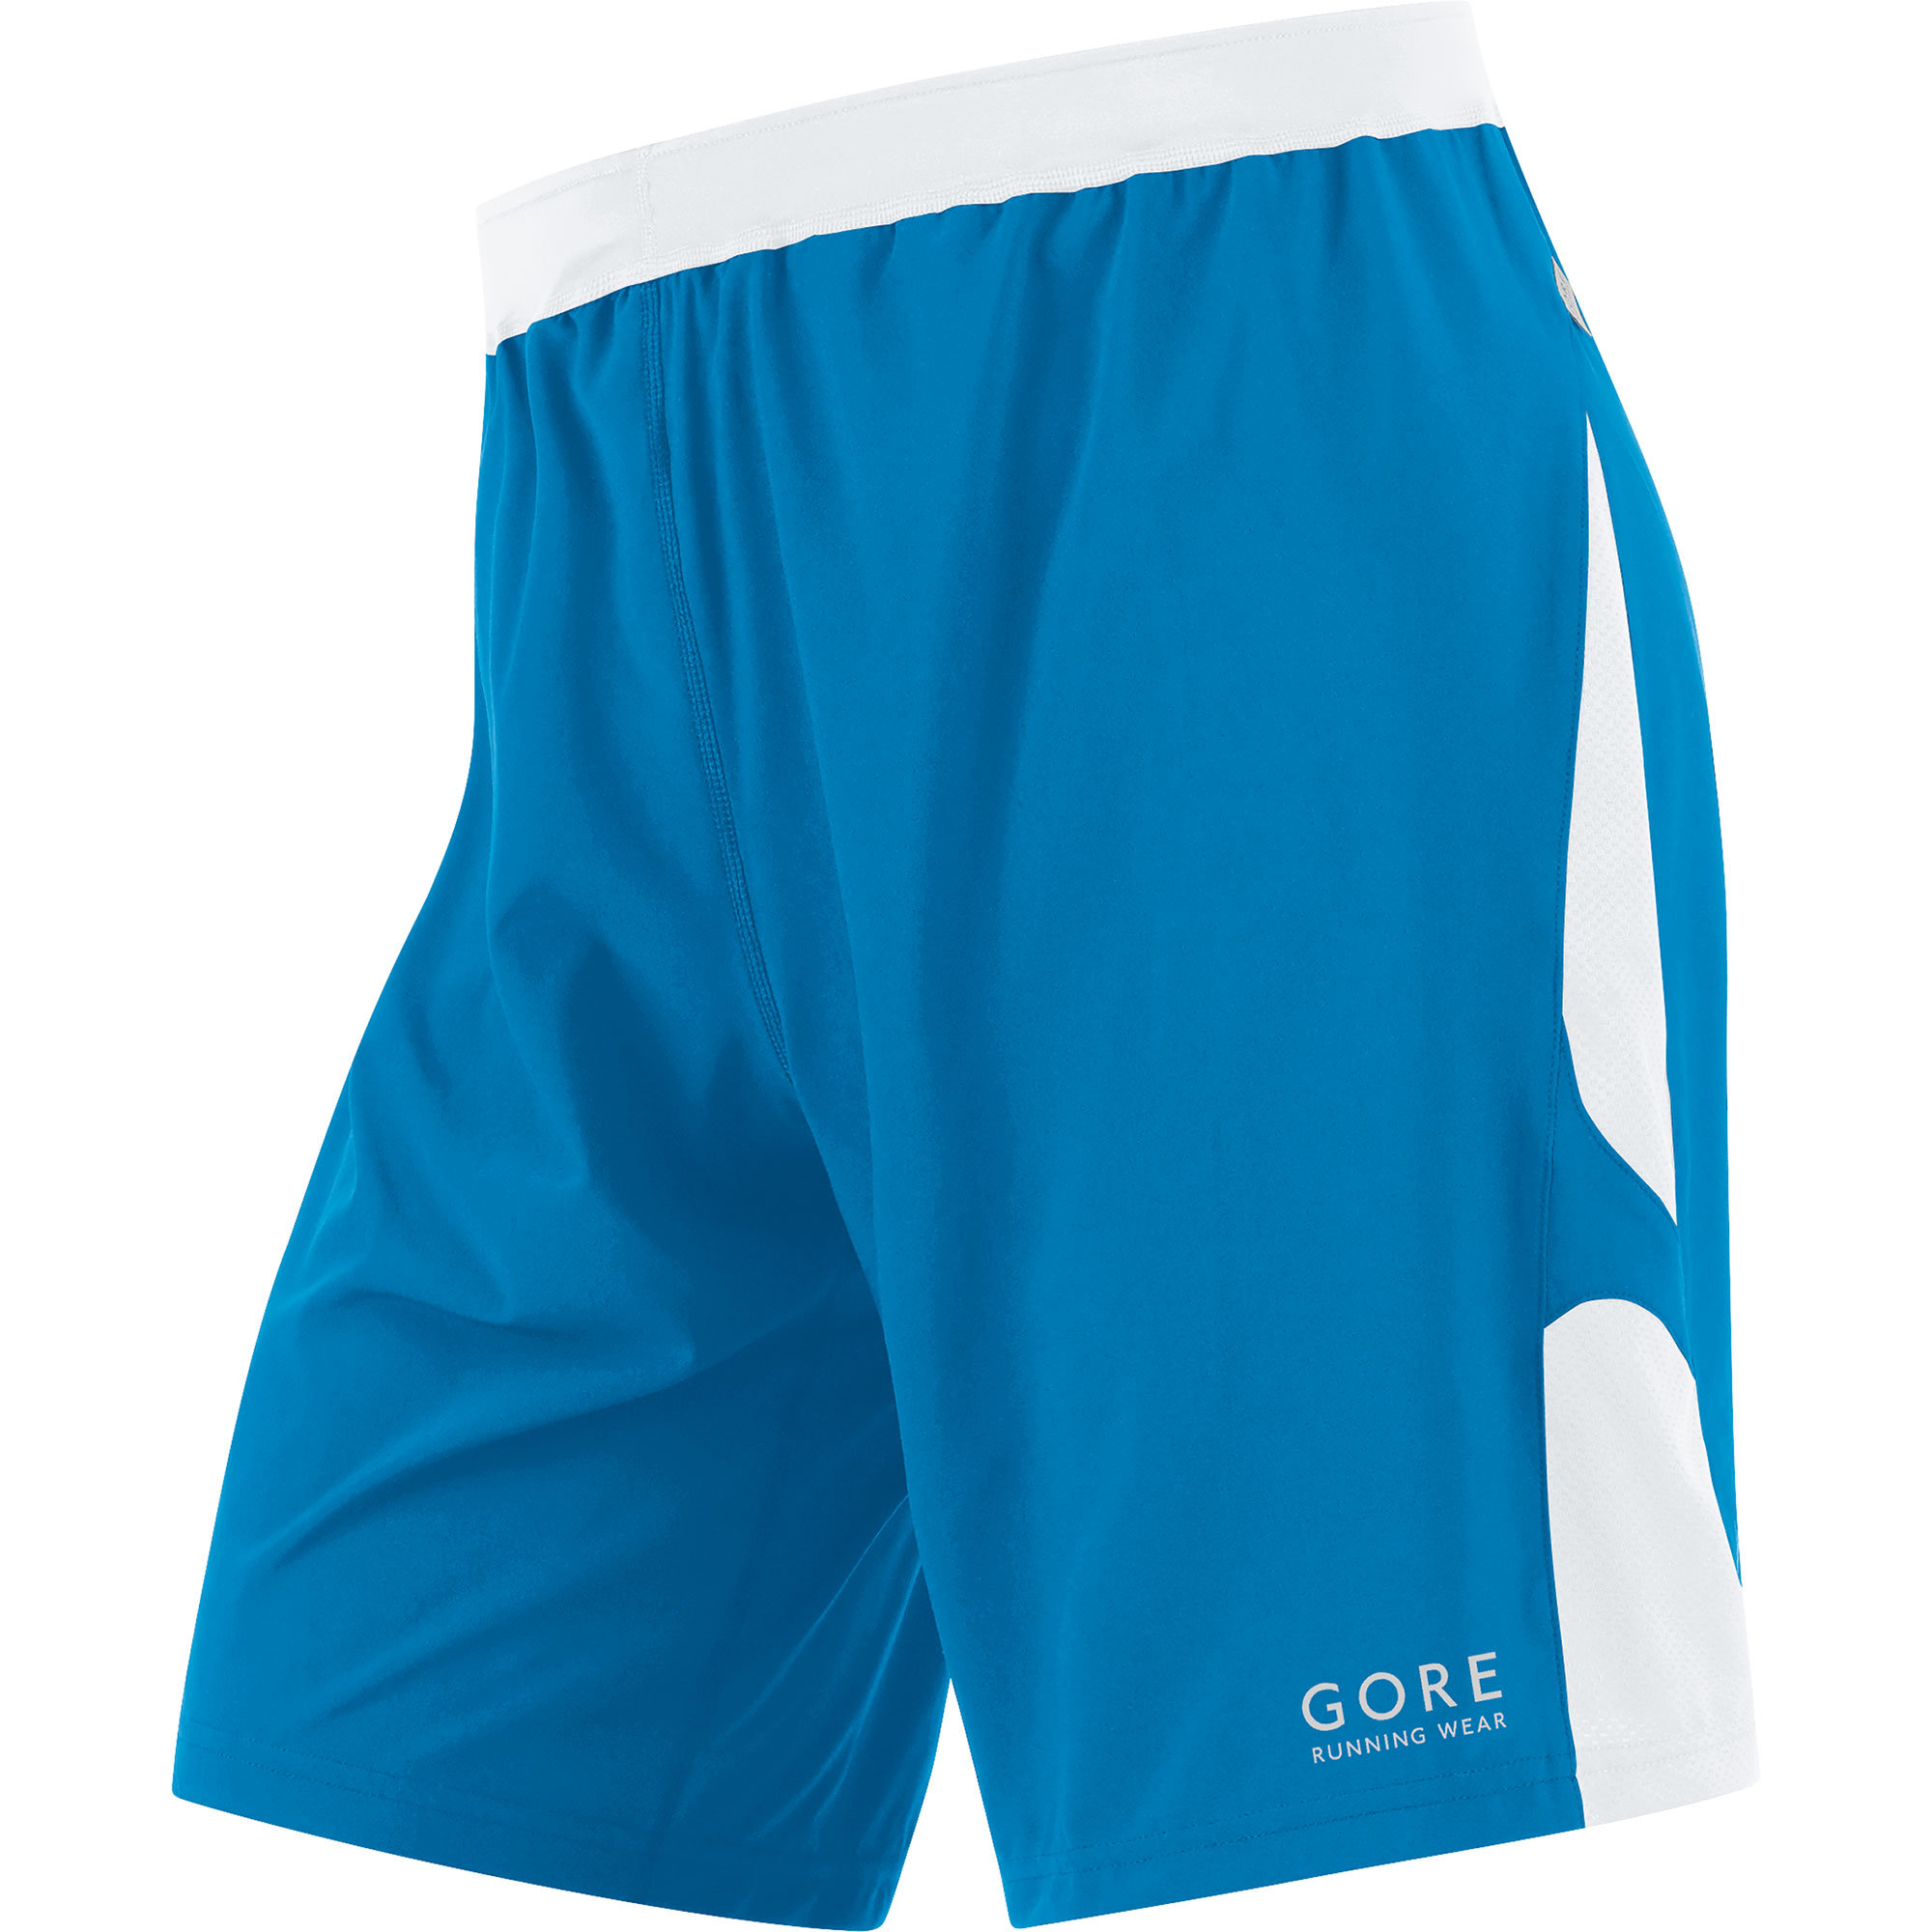 Gore Air Shorts in Blau